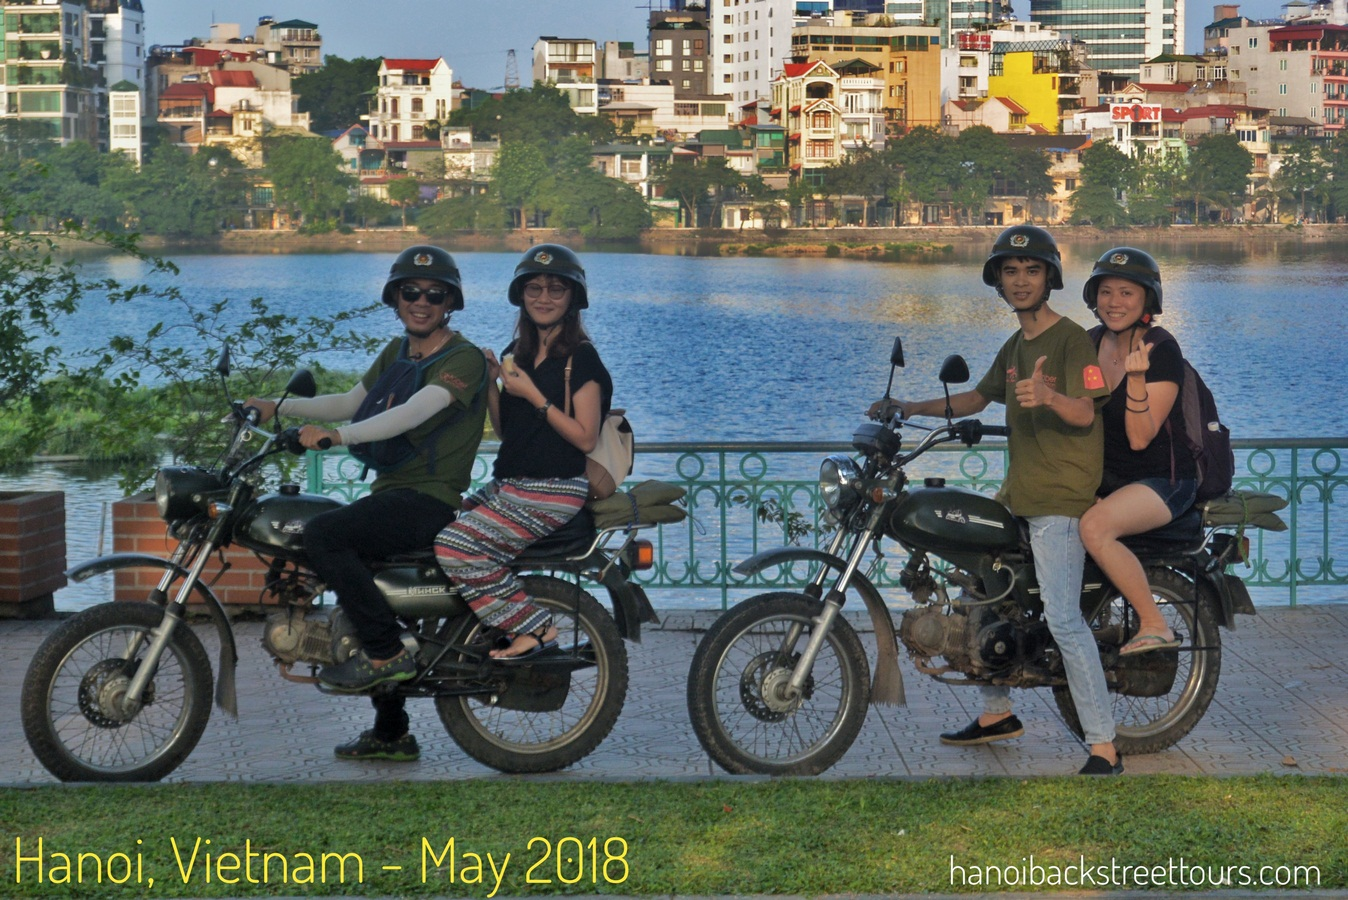 Hanoi Motorbike Tour Is A Fun Way To Experience The Sights, Smells And Tastes Of Hanoi. And Definitely, The Best Way To See And Learn About The Real Hanoi Not Just The Run-off-the-mill Tourist Sites.